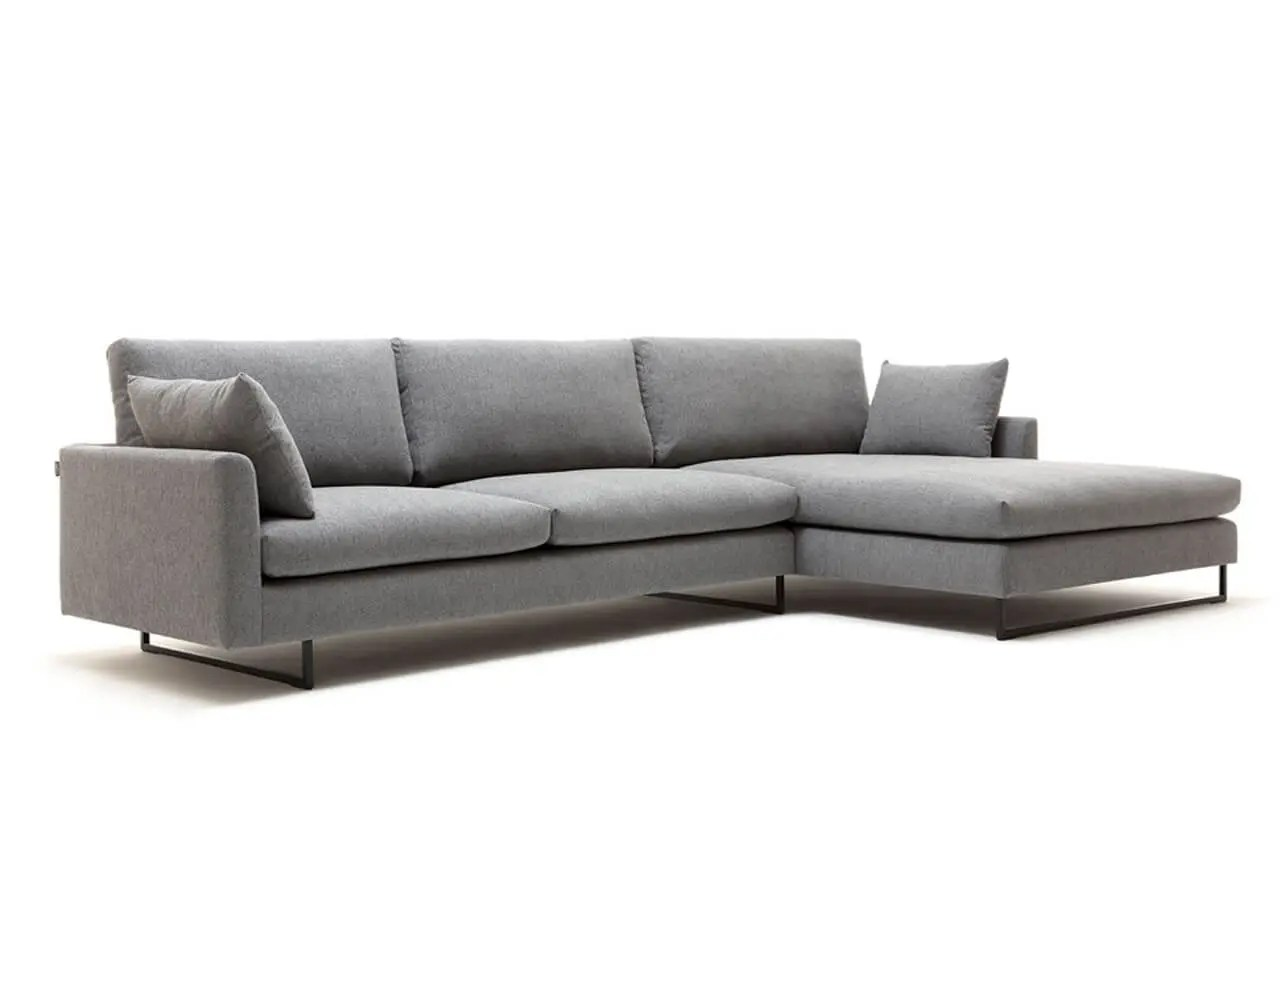 Freistil Sofa Freistil 134 Sofa - Home Company Möbel